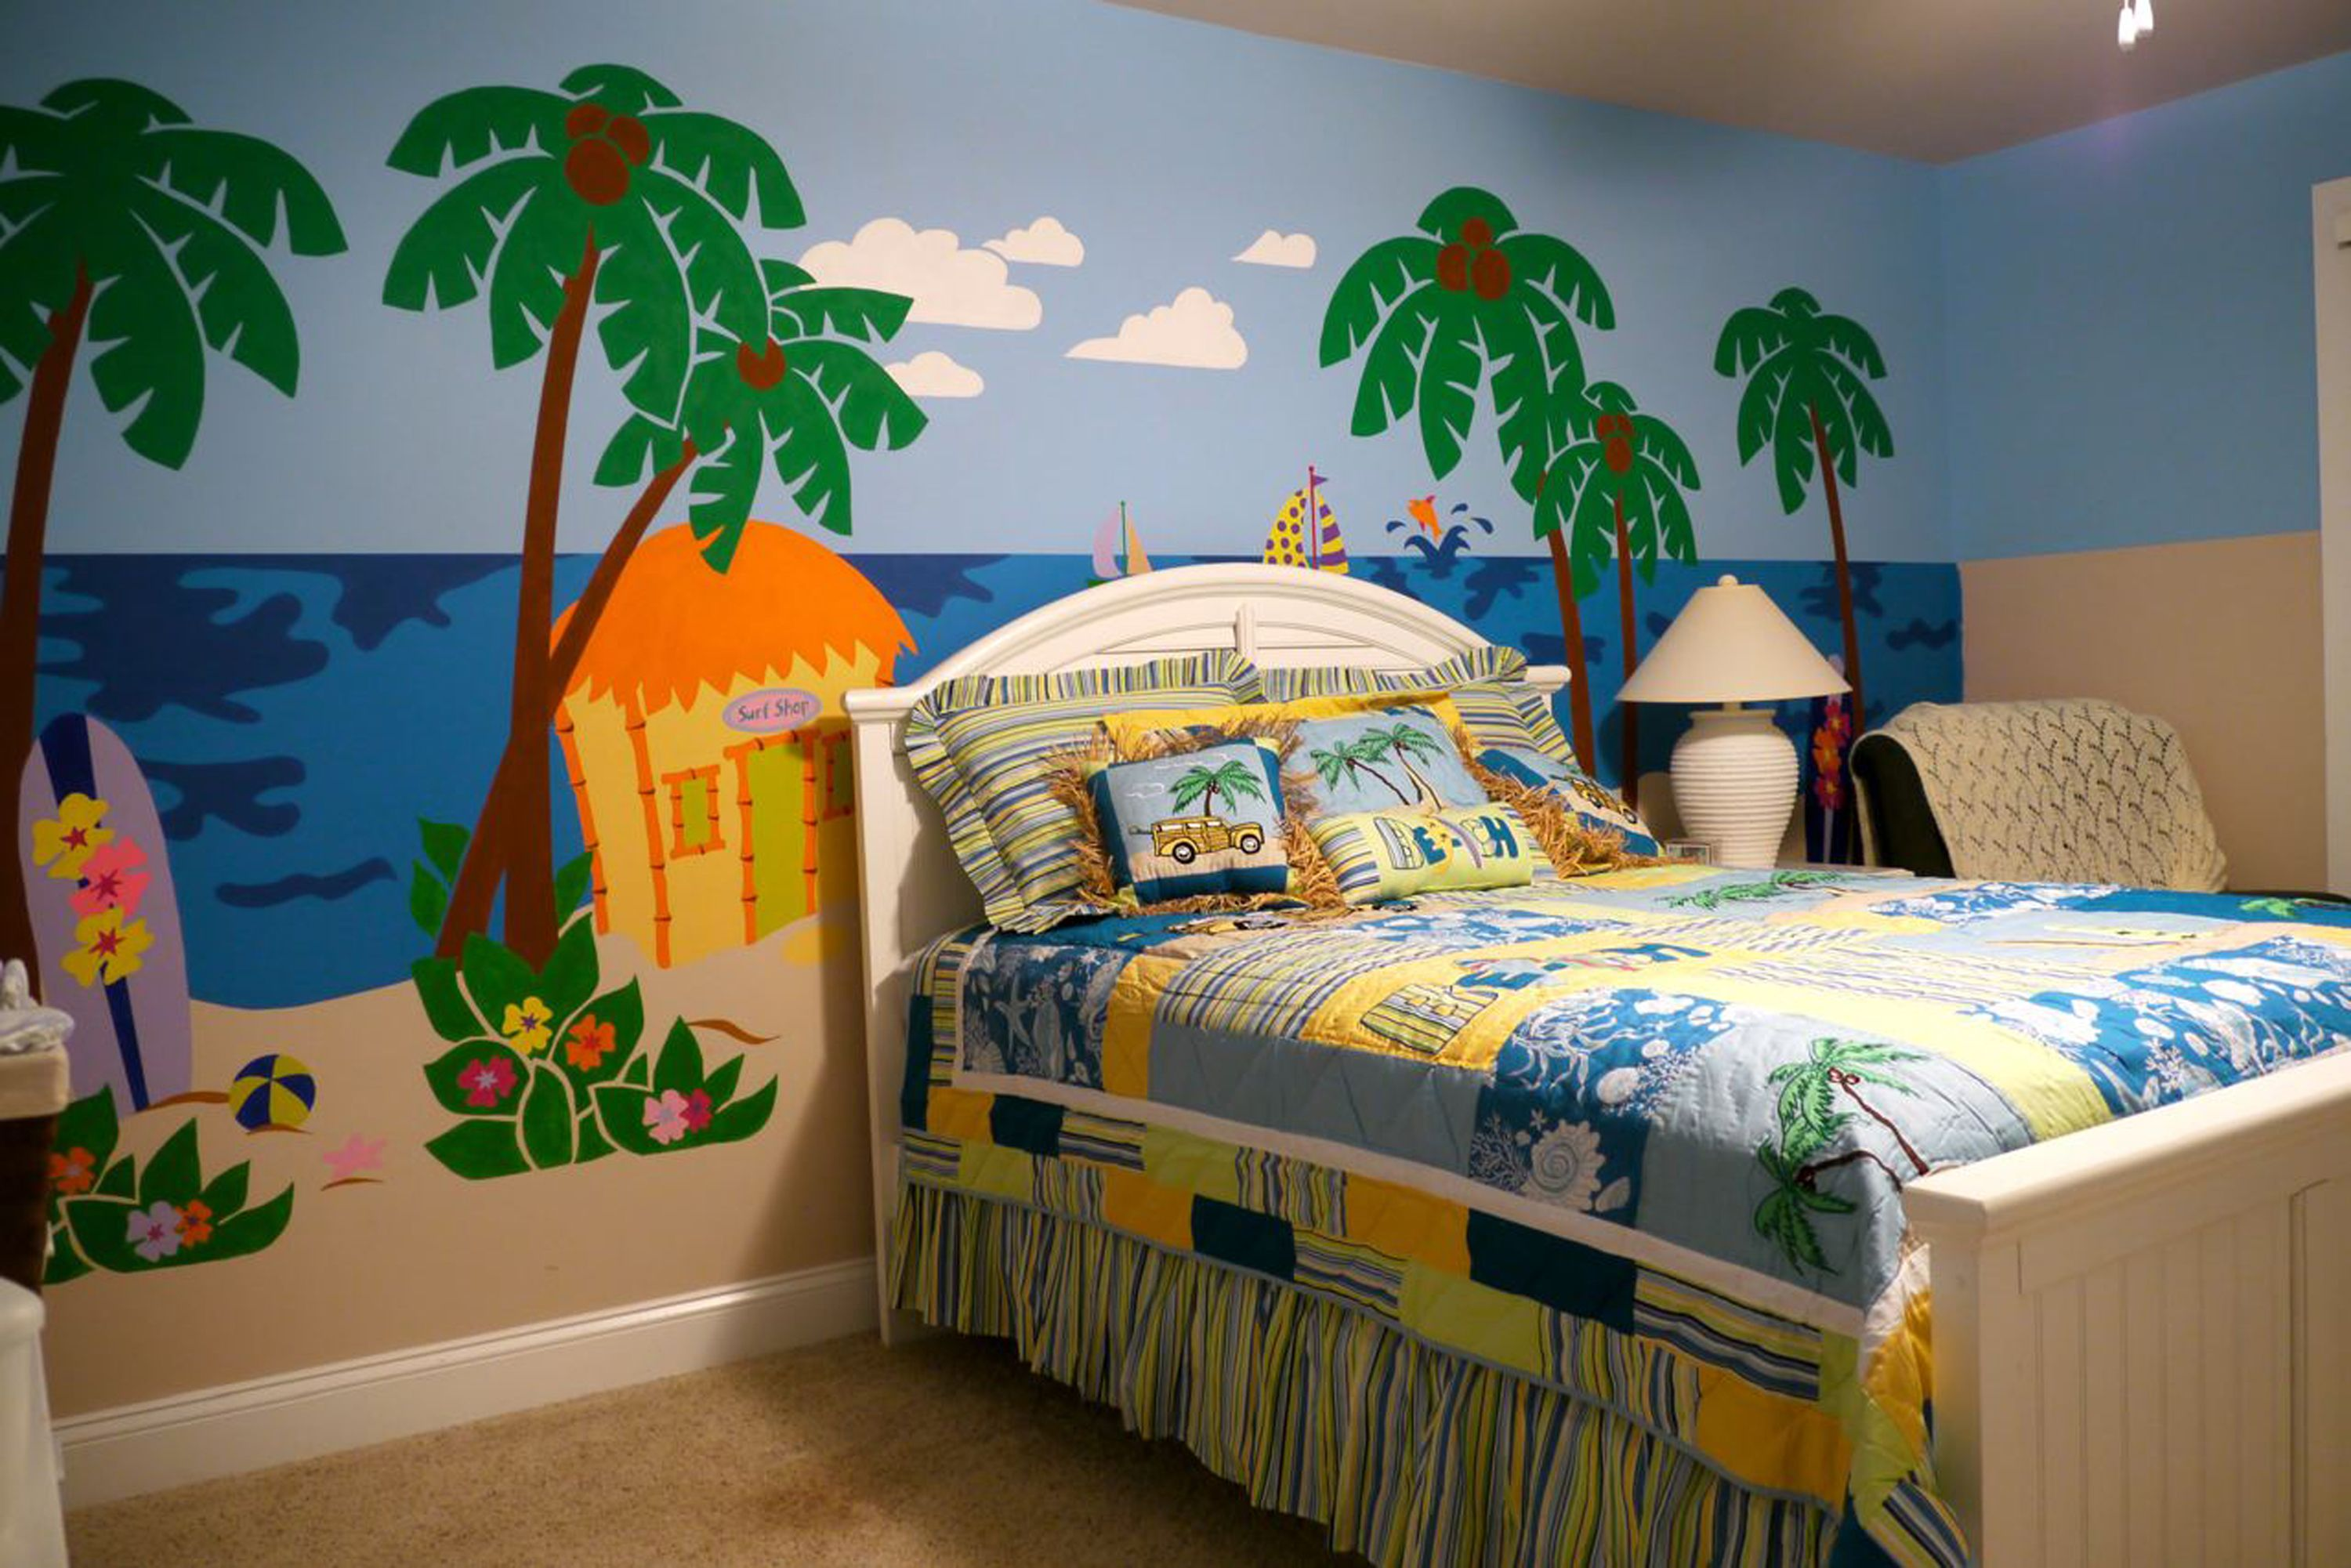 kids for decorative vintage boys full surfboard decor surfboards of size art living bedroom surf room themed wall bedspread cheap beach